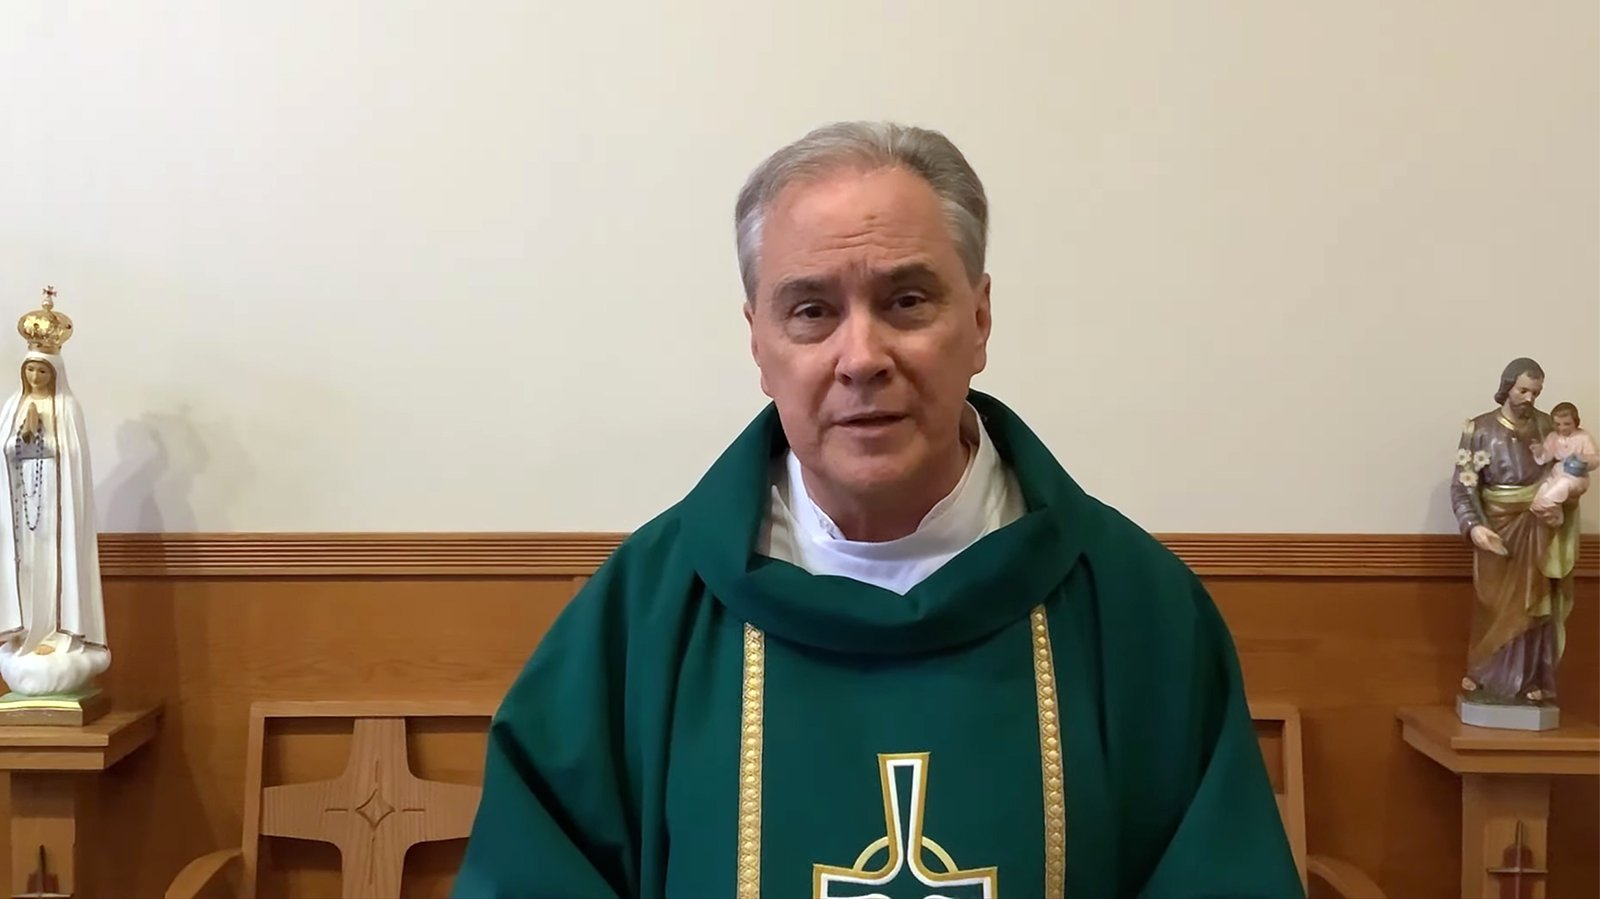 Monsignor Jim Lisante delivers a sermon during a July 2021 Mass at Our Lady of Lourdes Church in Massapequa Park, New York. Video screengrab